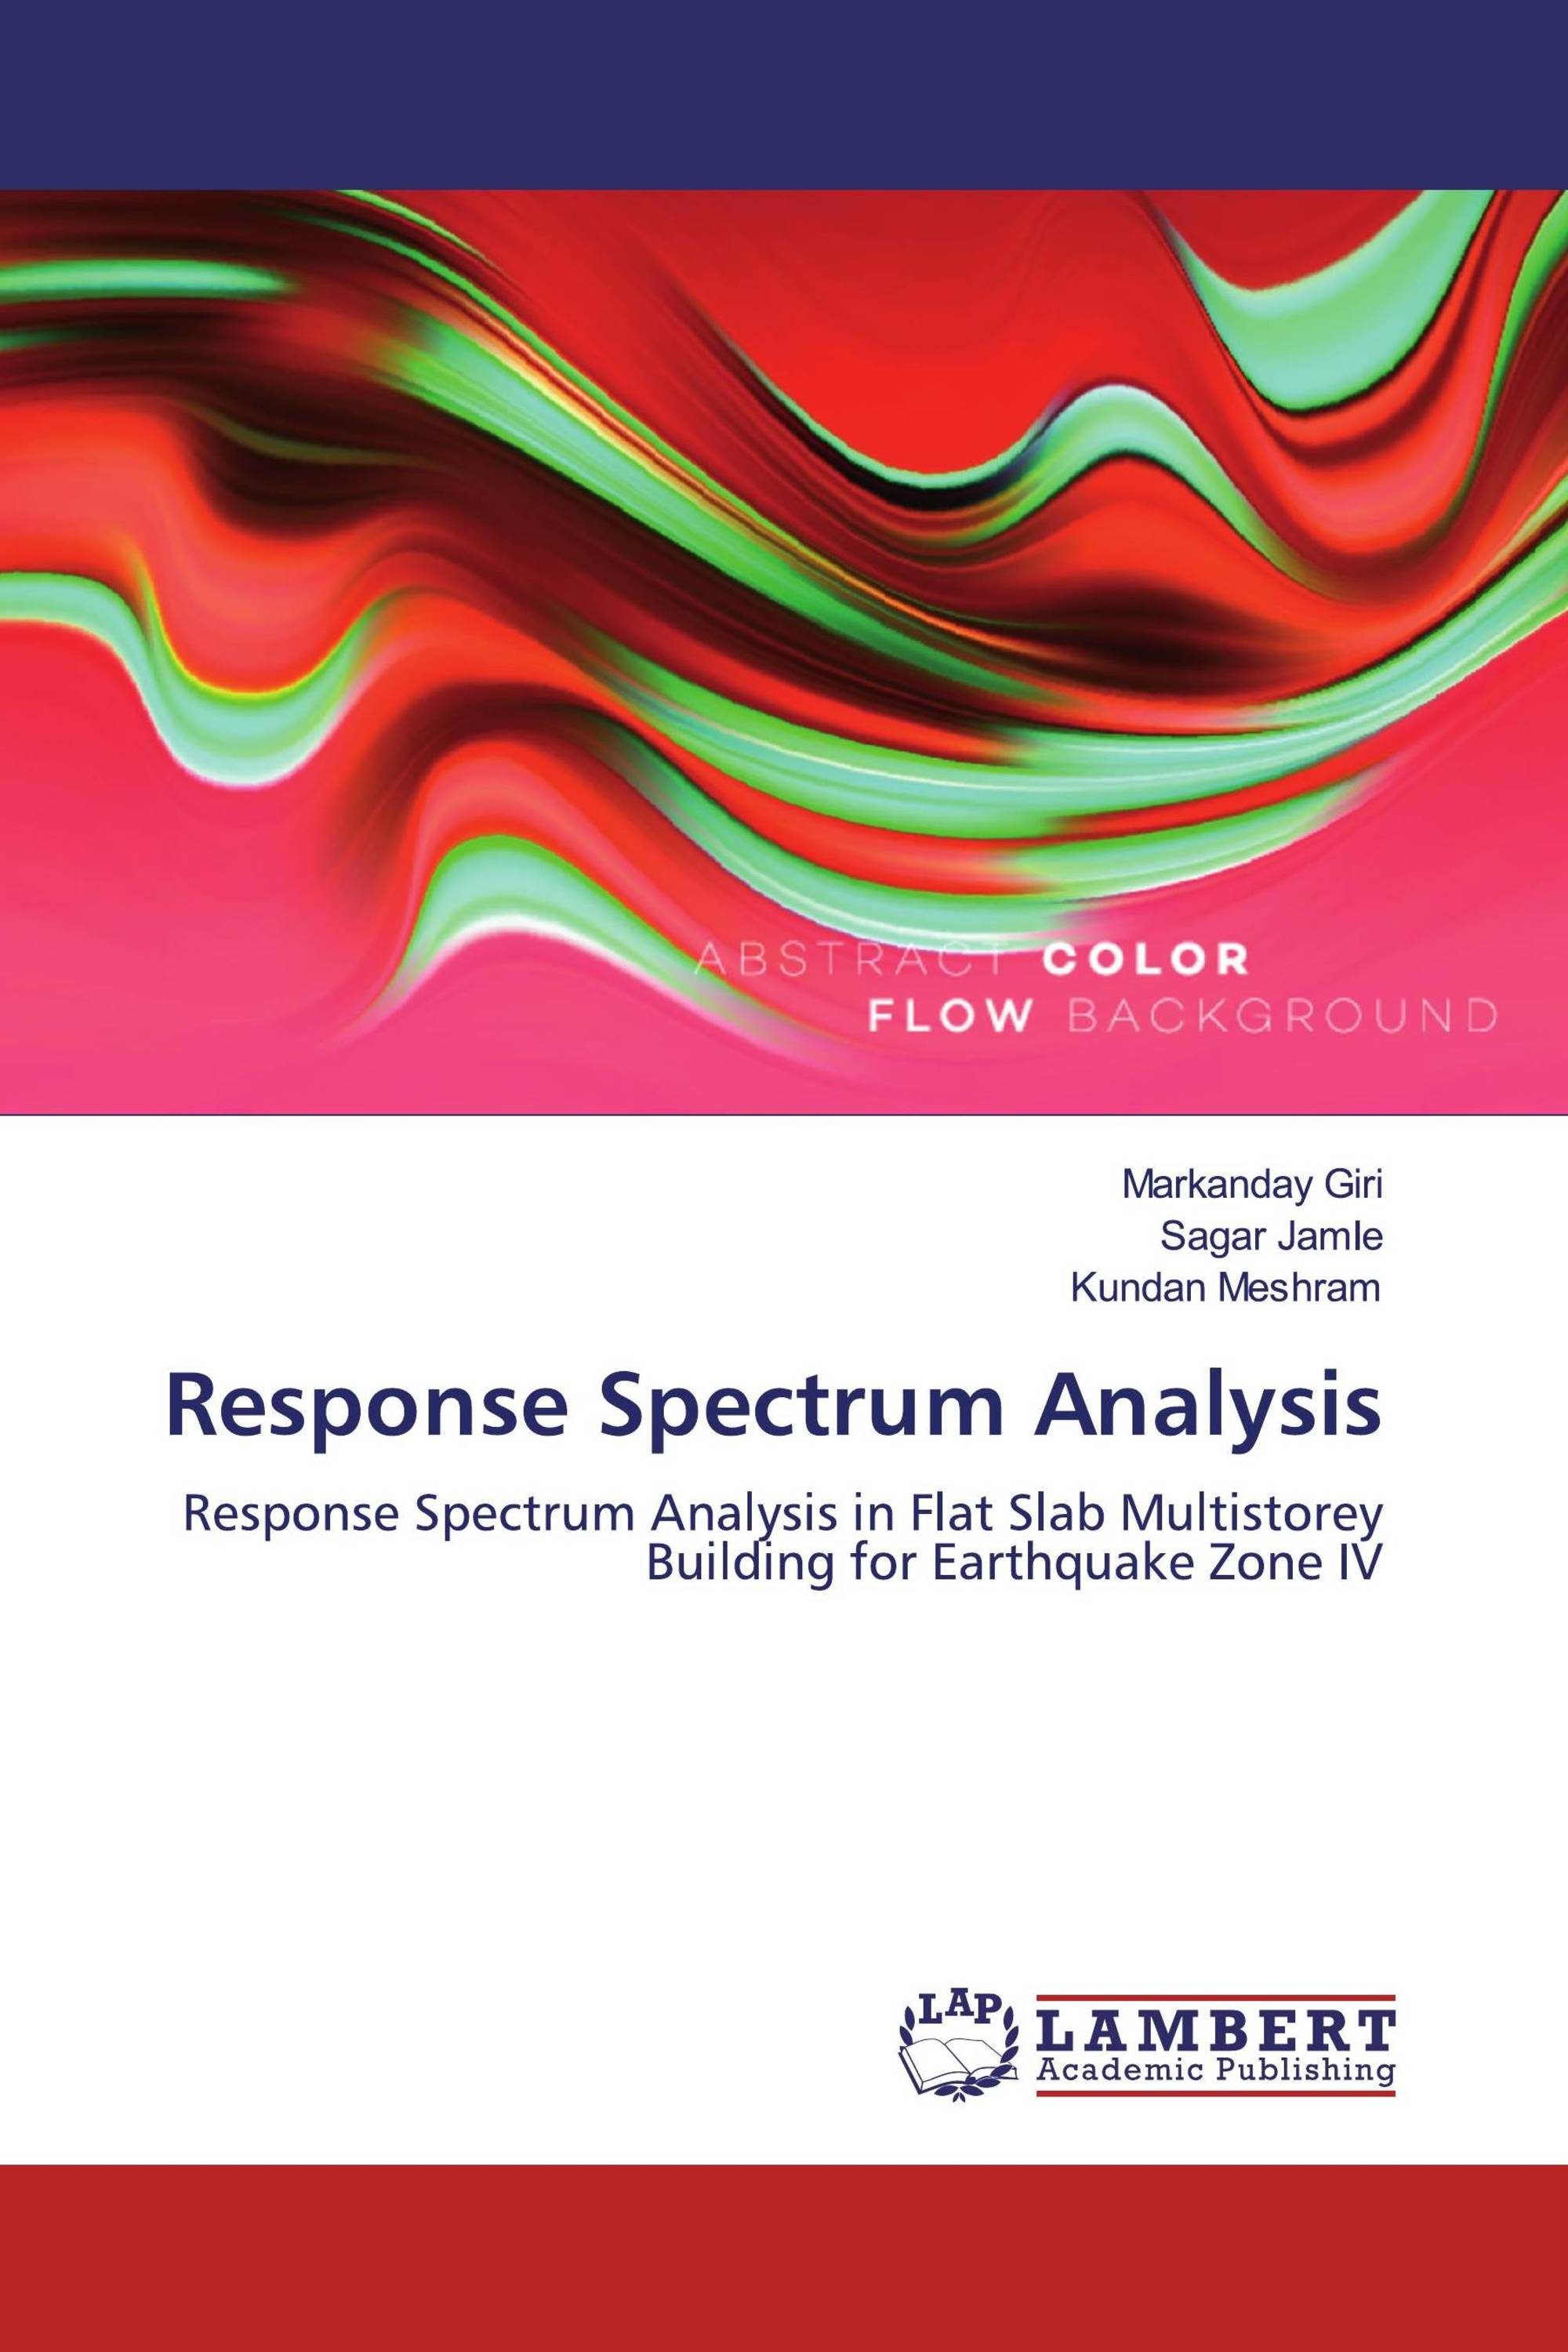 Response Spectrum Analysis